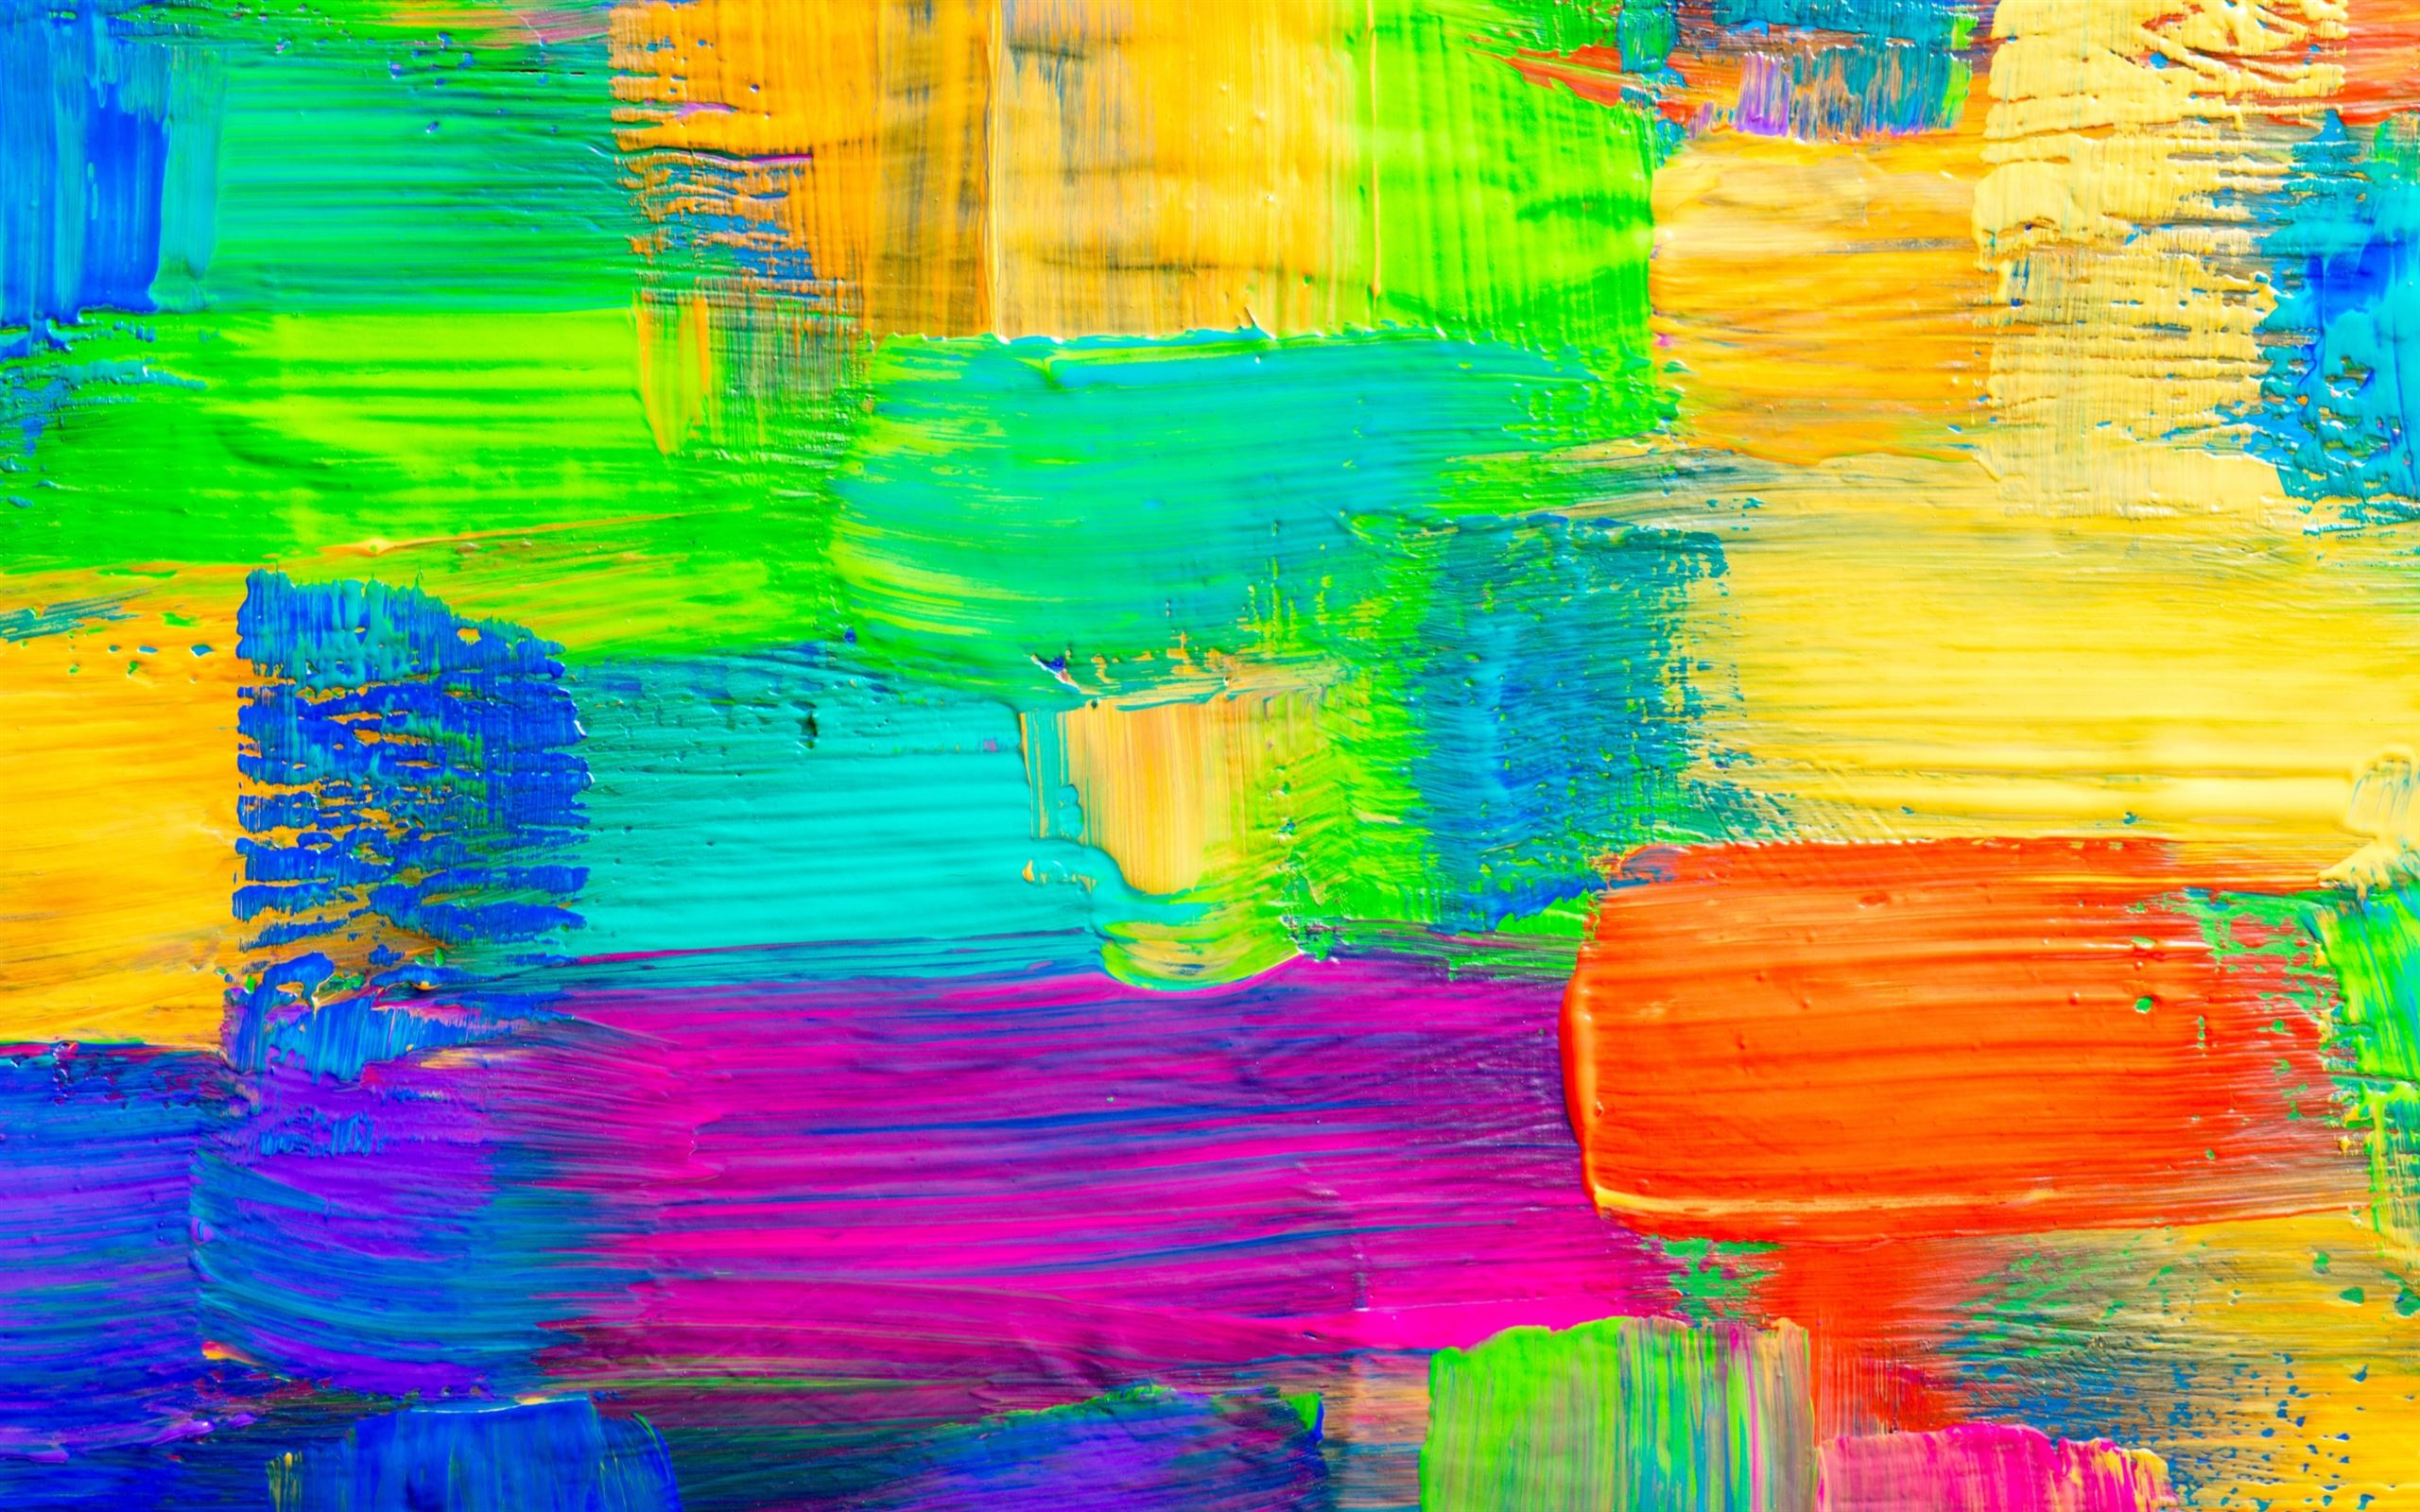 The paint color Mac Wallpaper Download | Free Mac Wallpapers Download